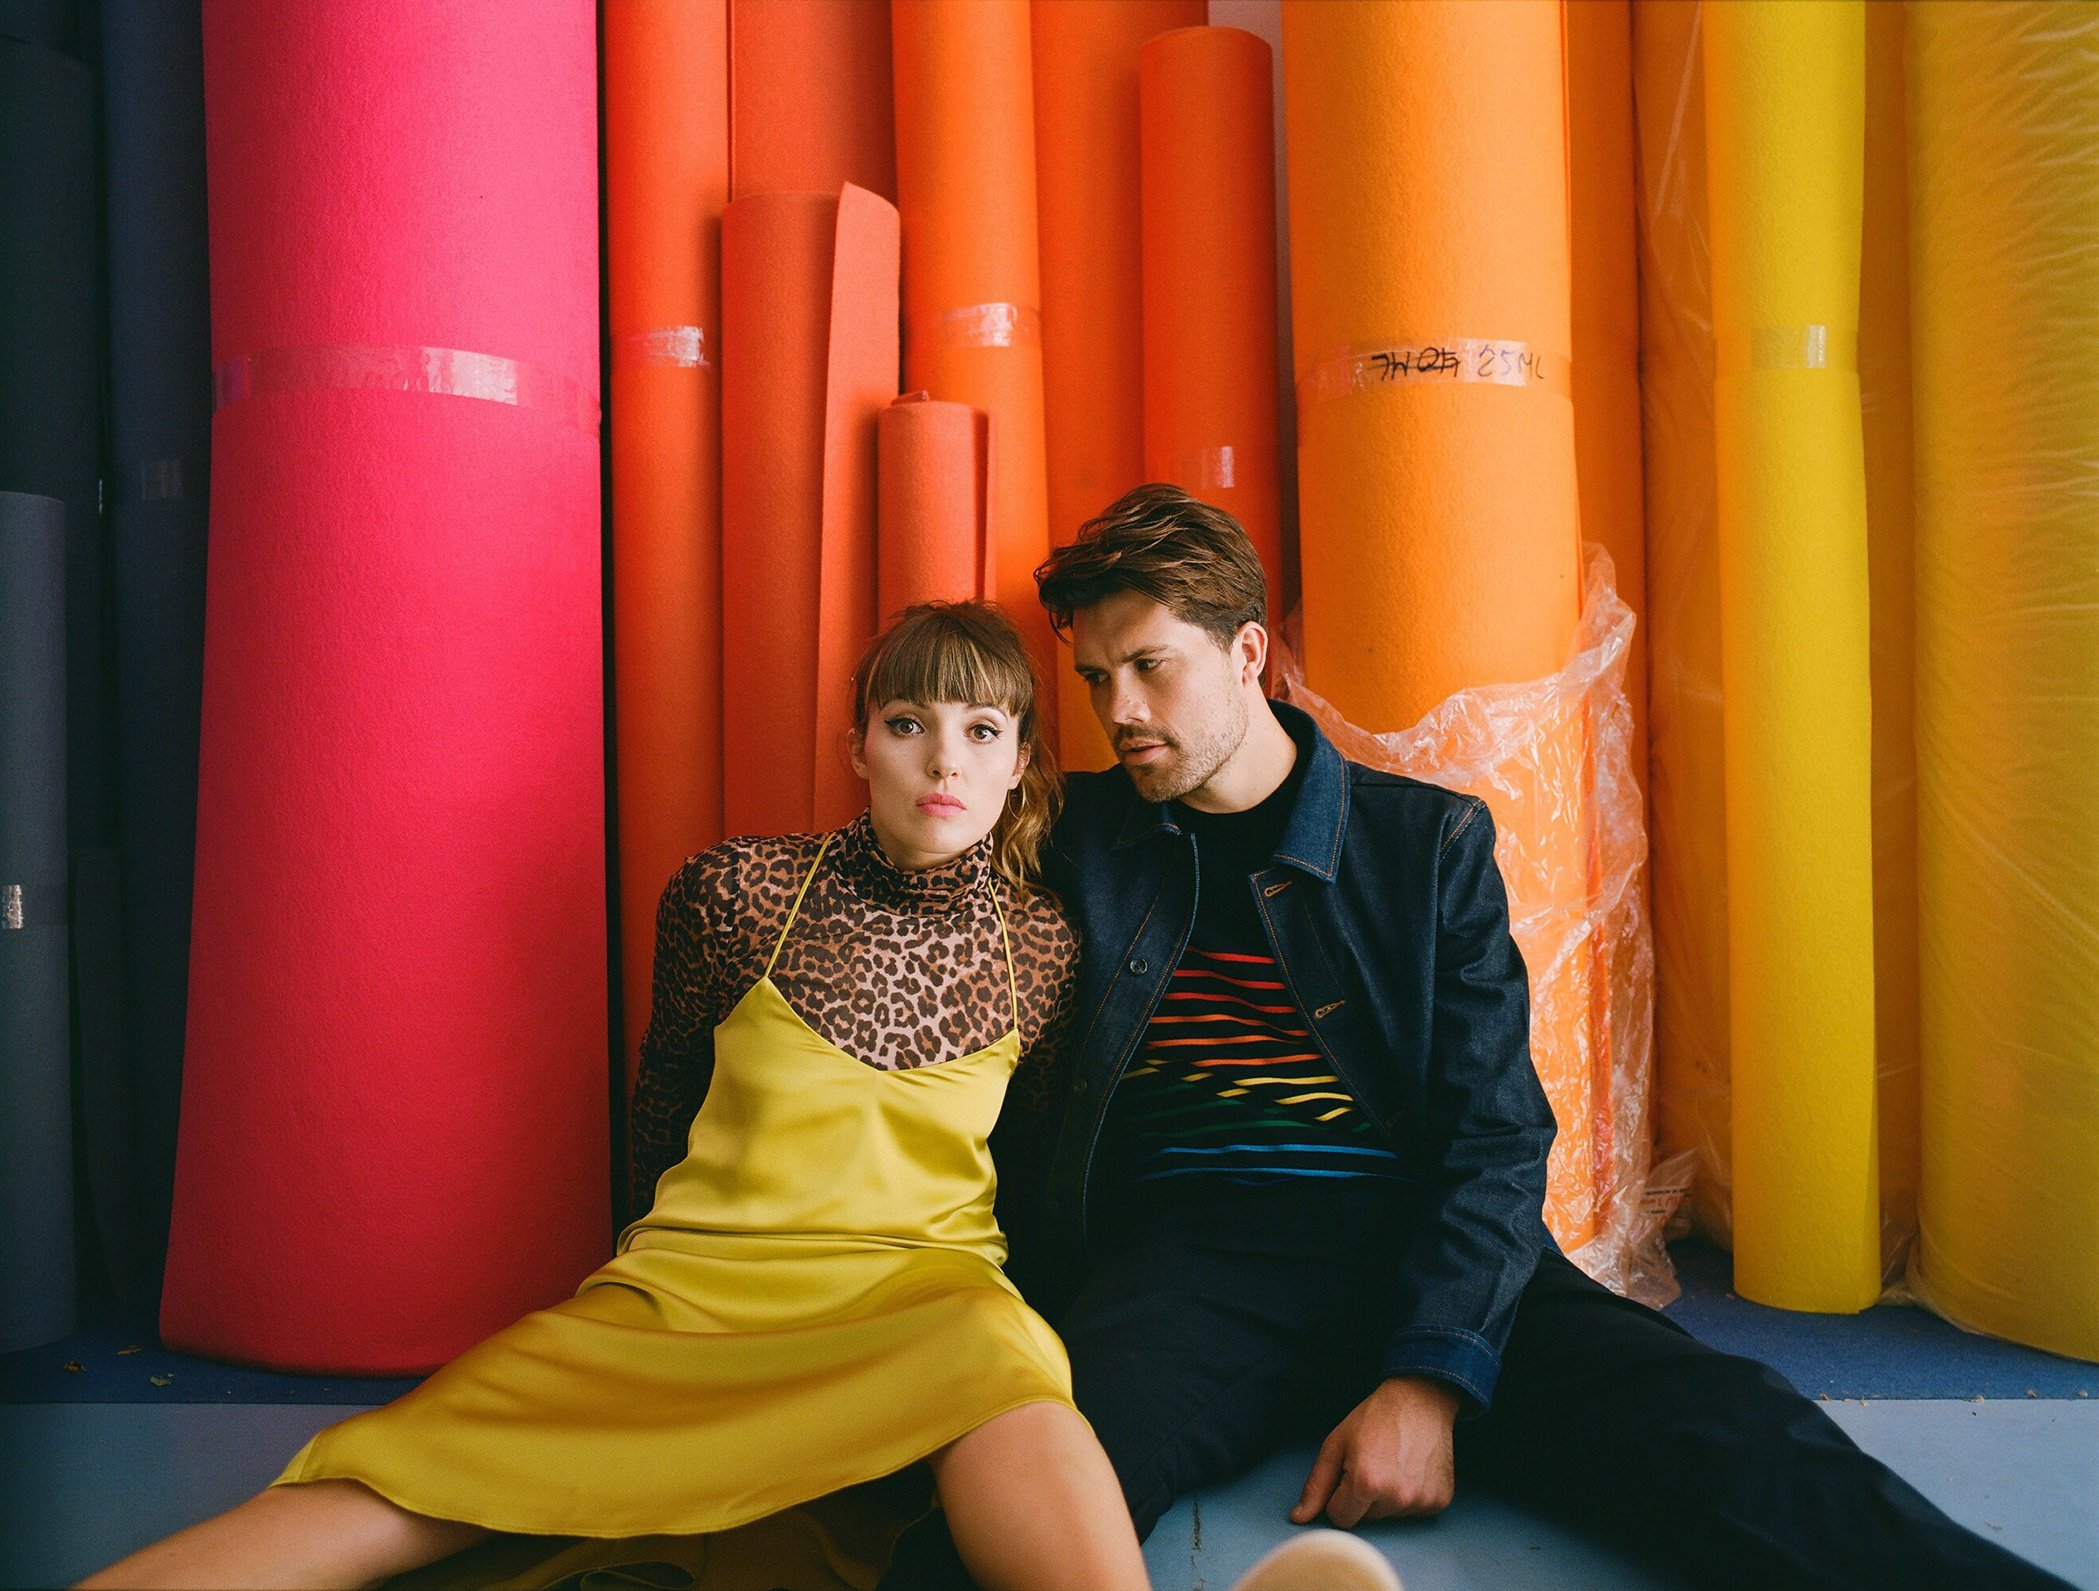 OH WONDER shares their brand new single 'Happy' - Listen Now